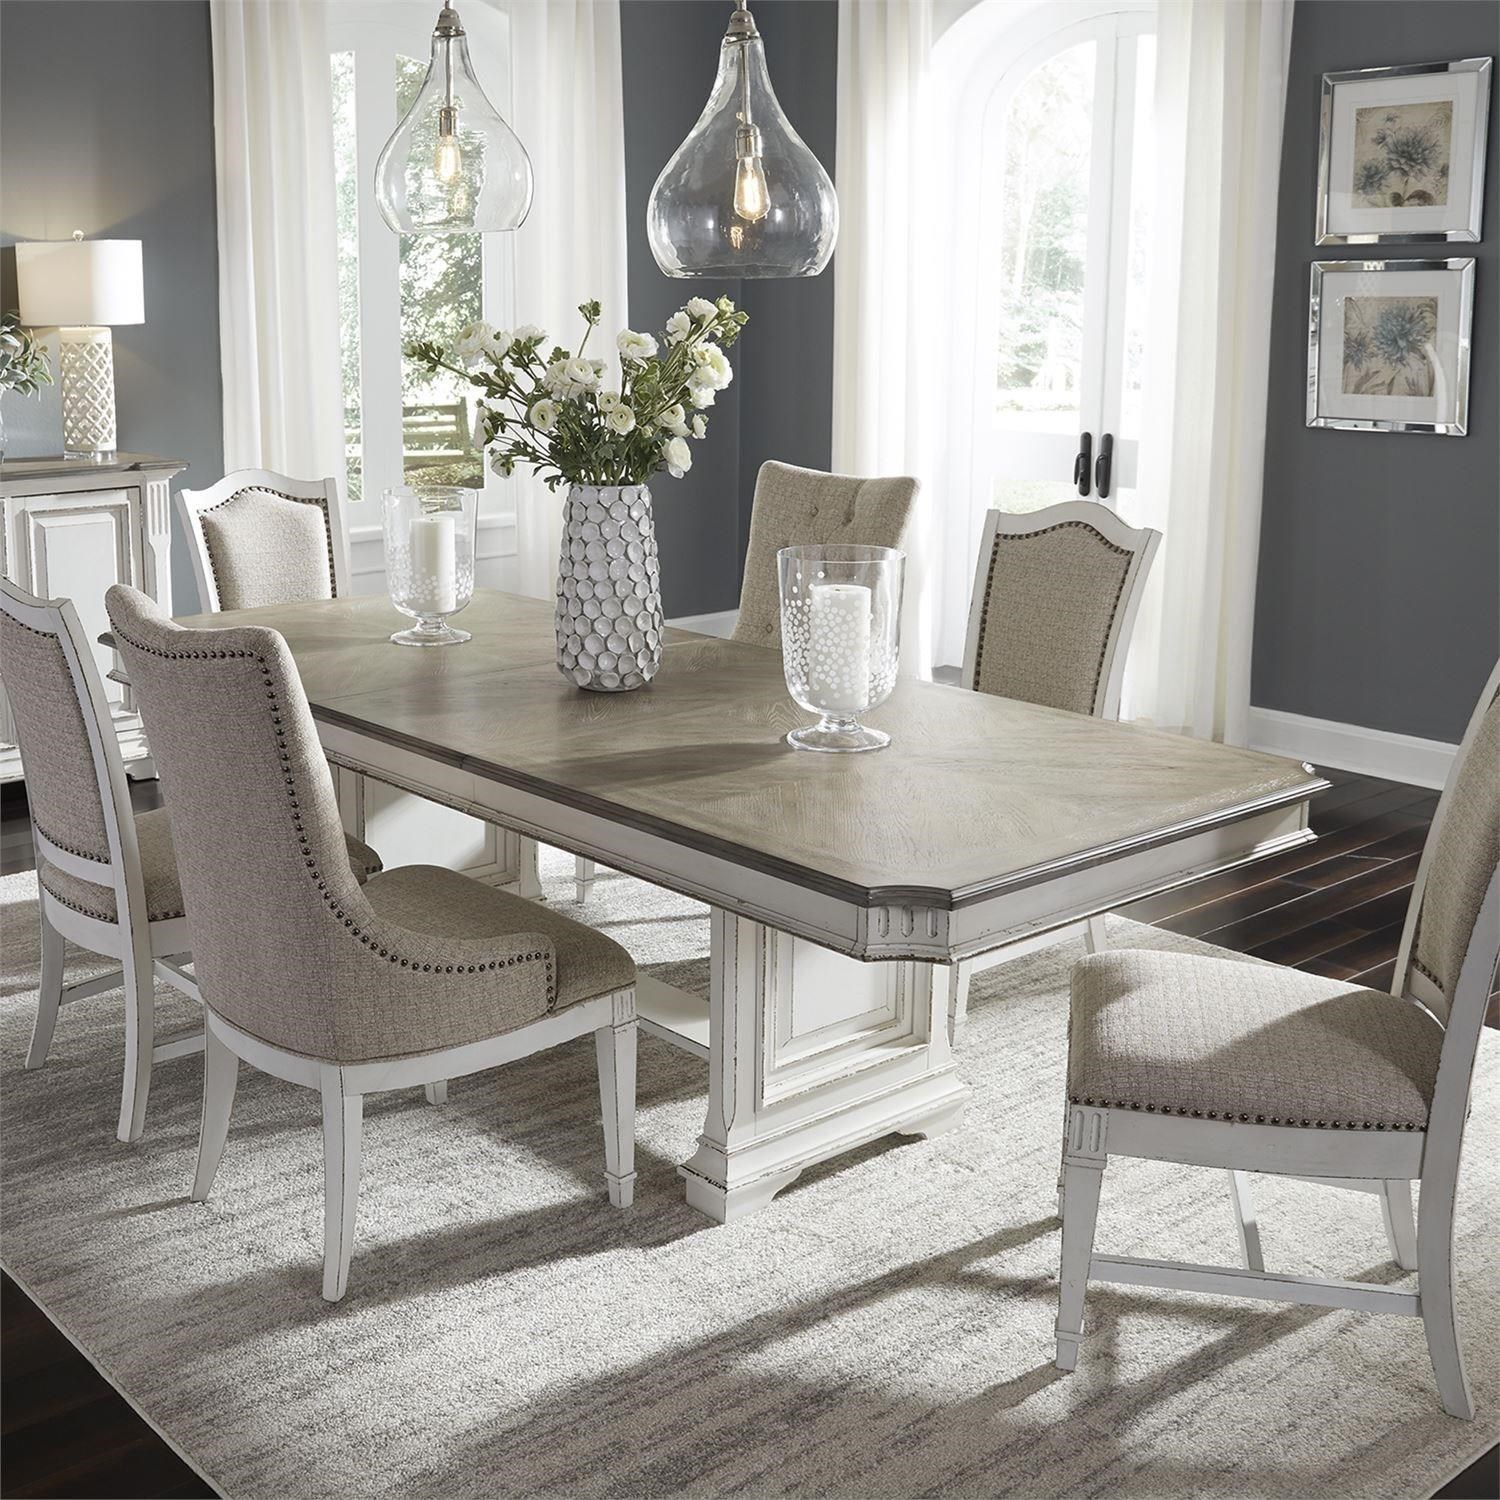 Abbey Park 7 Piece Trestle Table Set  by Libby at Walker's Furniture